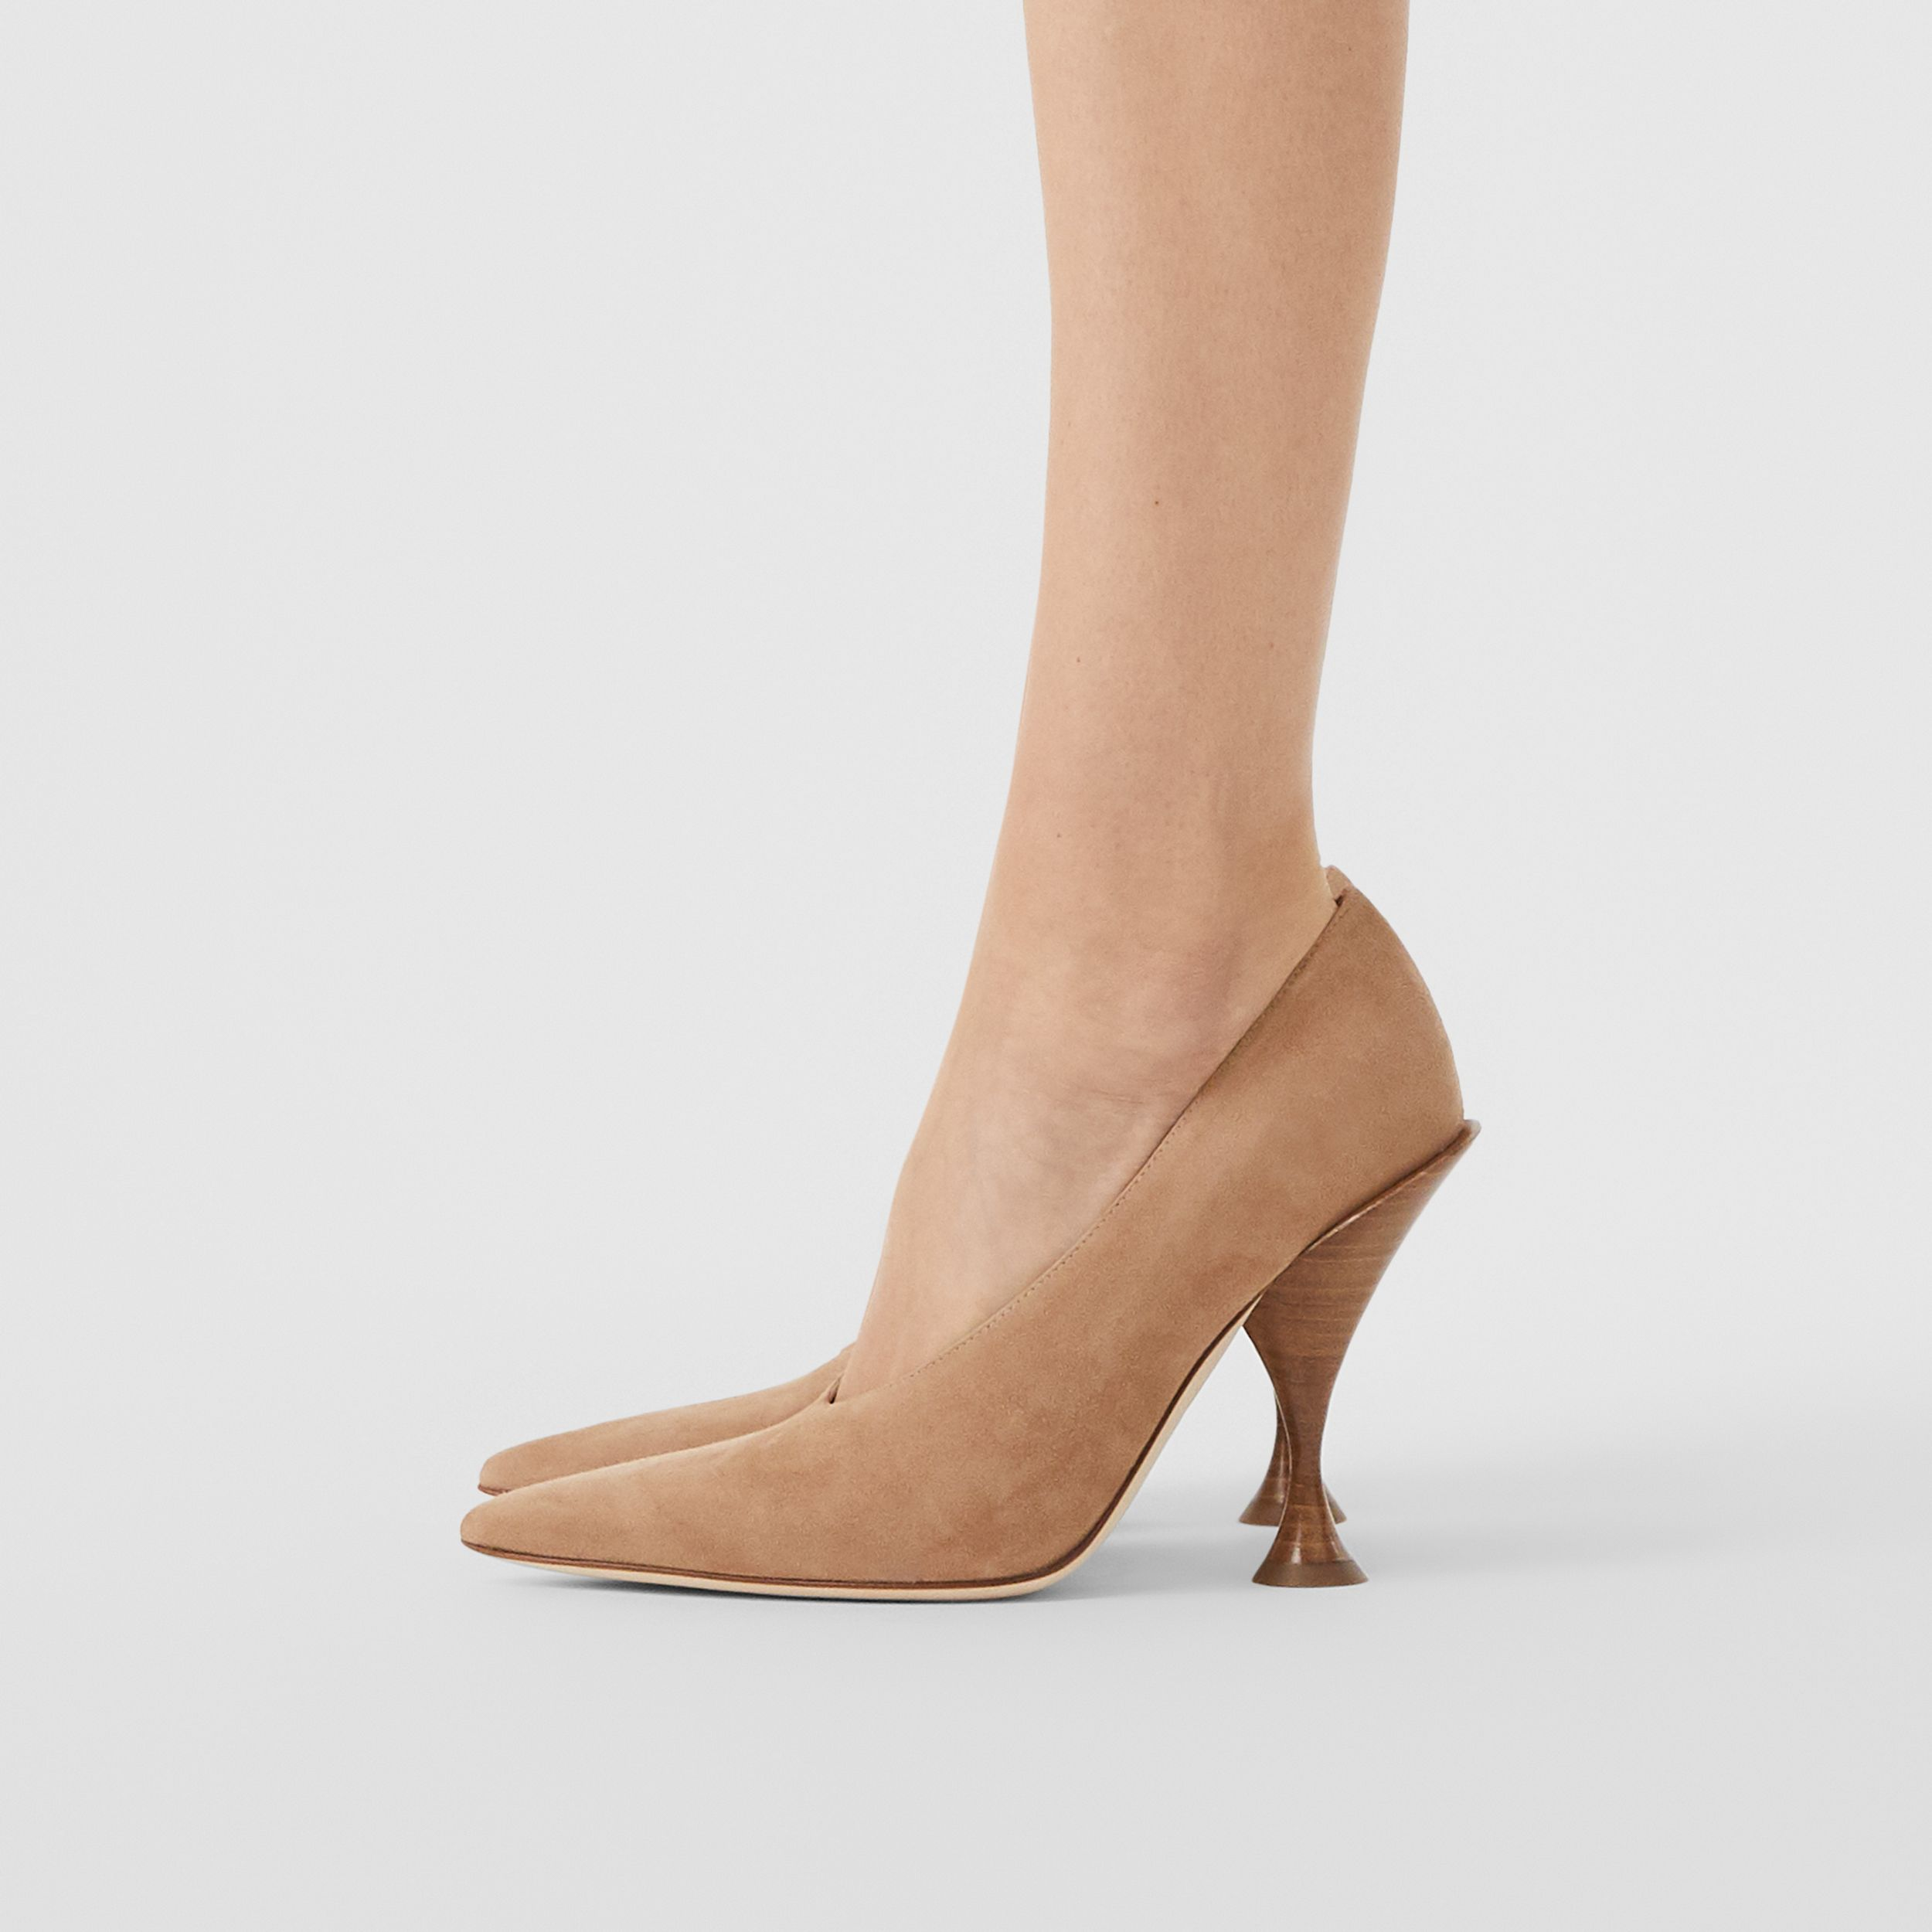 Suede Point-toe Pumps in Warm Camel - Women | Burberry - 3